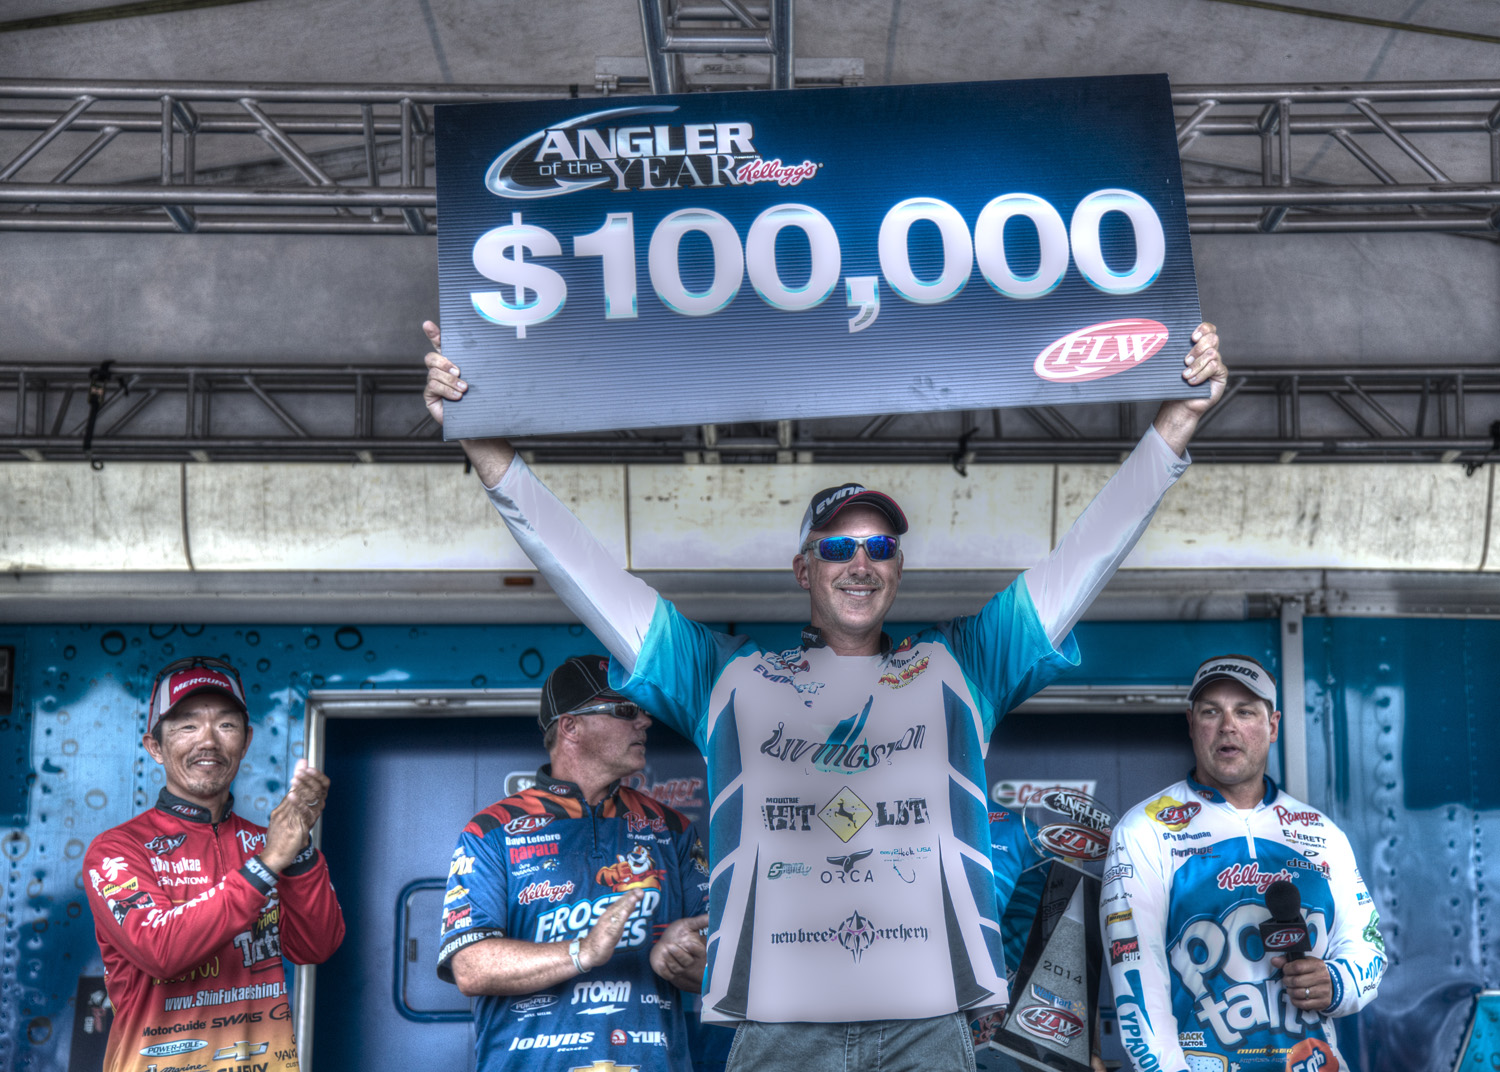 Reeltime Report  2014 Angler of the Year